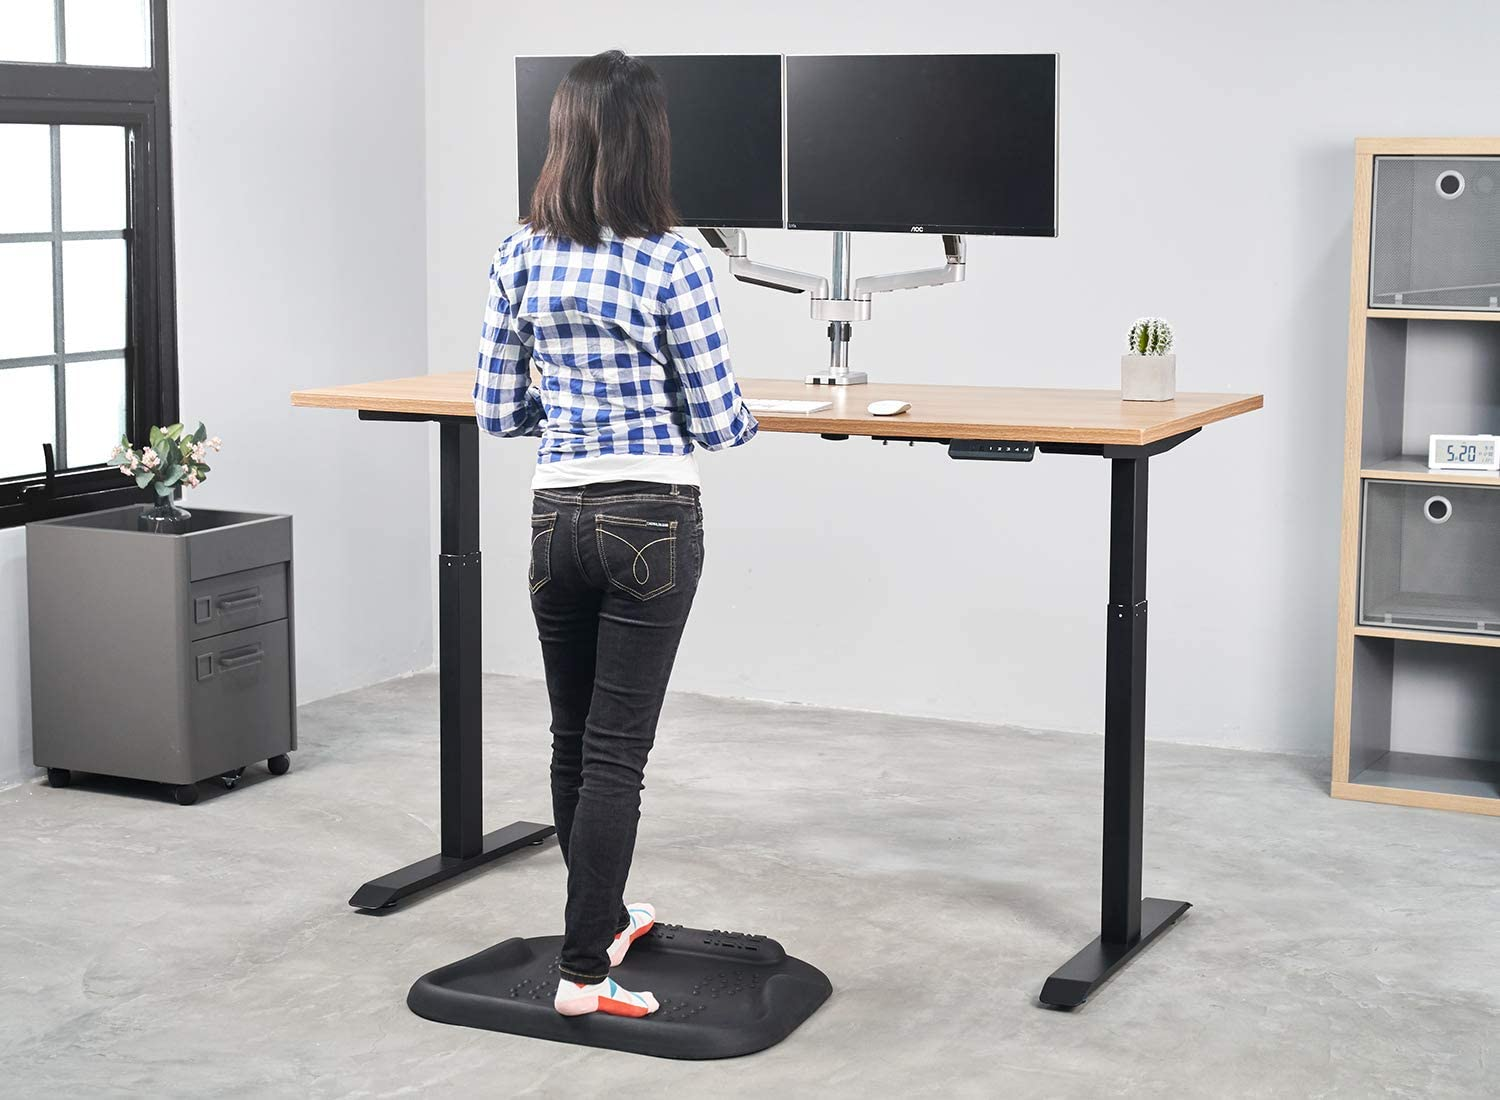 The 5 Best Standing Desk Mats (2021 Review)